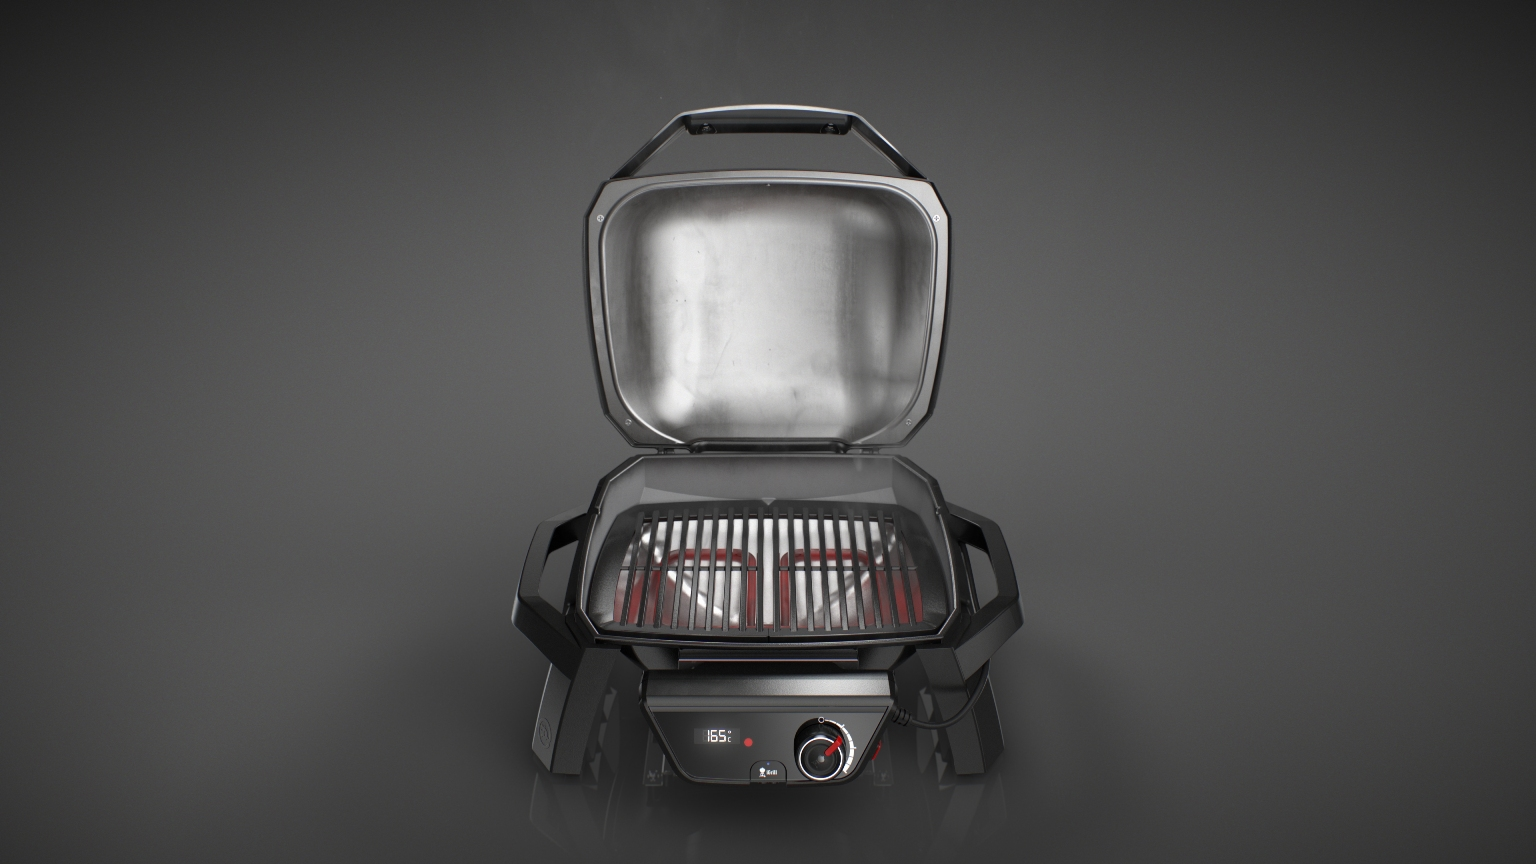 Weber Elektrogrill Hitze : Oxid surf and kite shop weber elektrogrill q 1400 stand dark grey